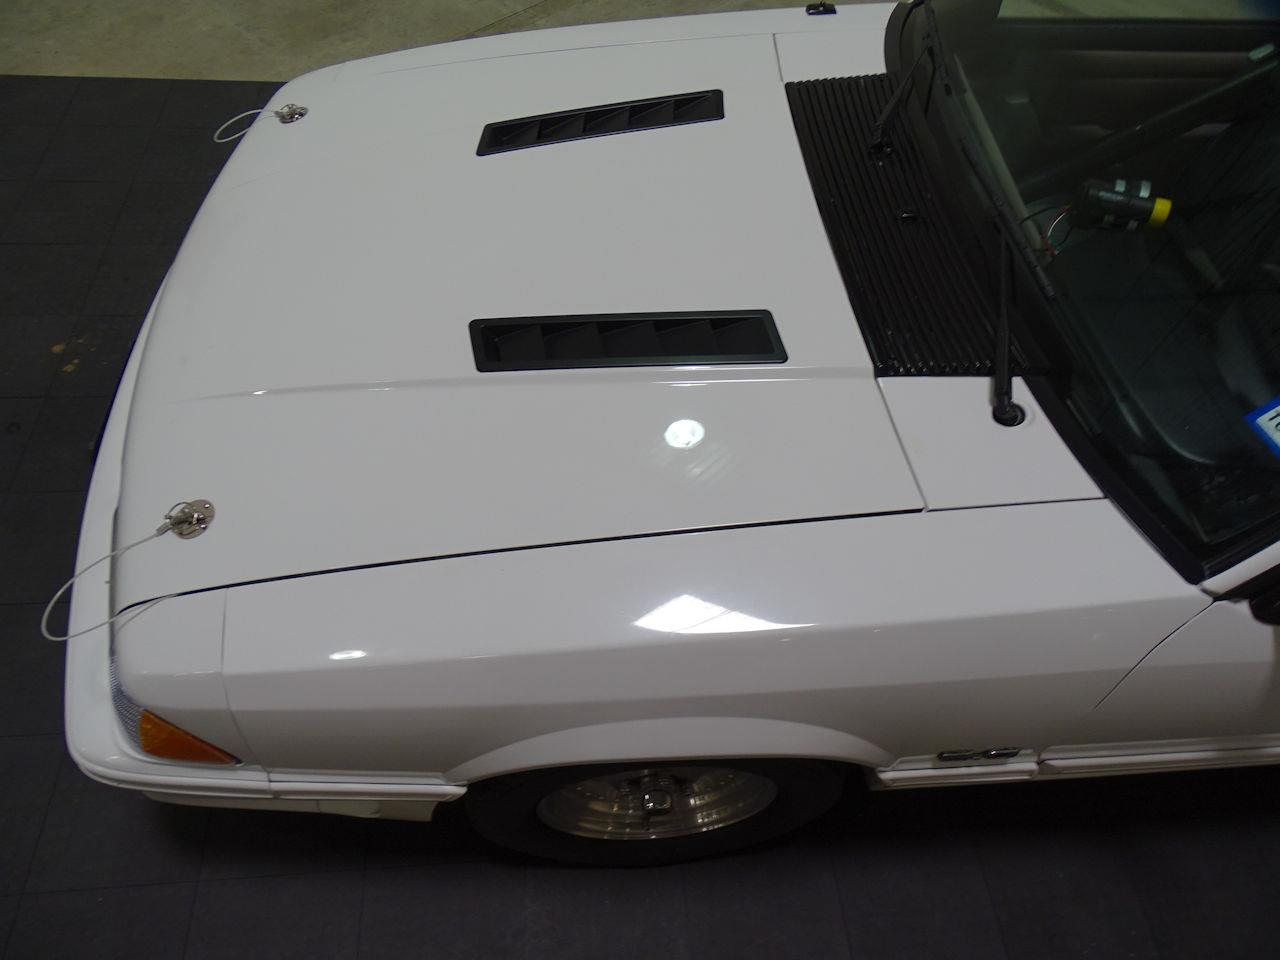 Large Picture of '92 Mustang located in Texas - $14,995.00 Offered by Gateway Classic Cars - Houston - LC8L